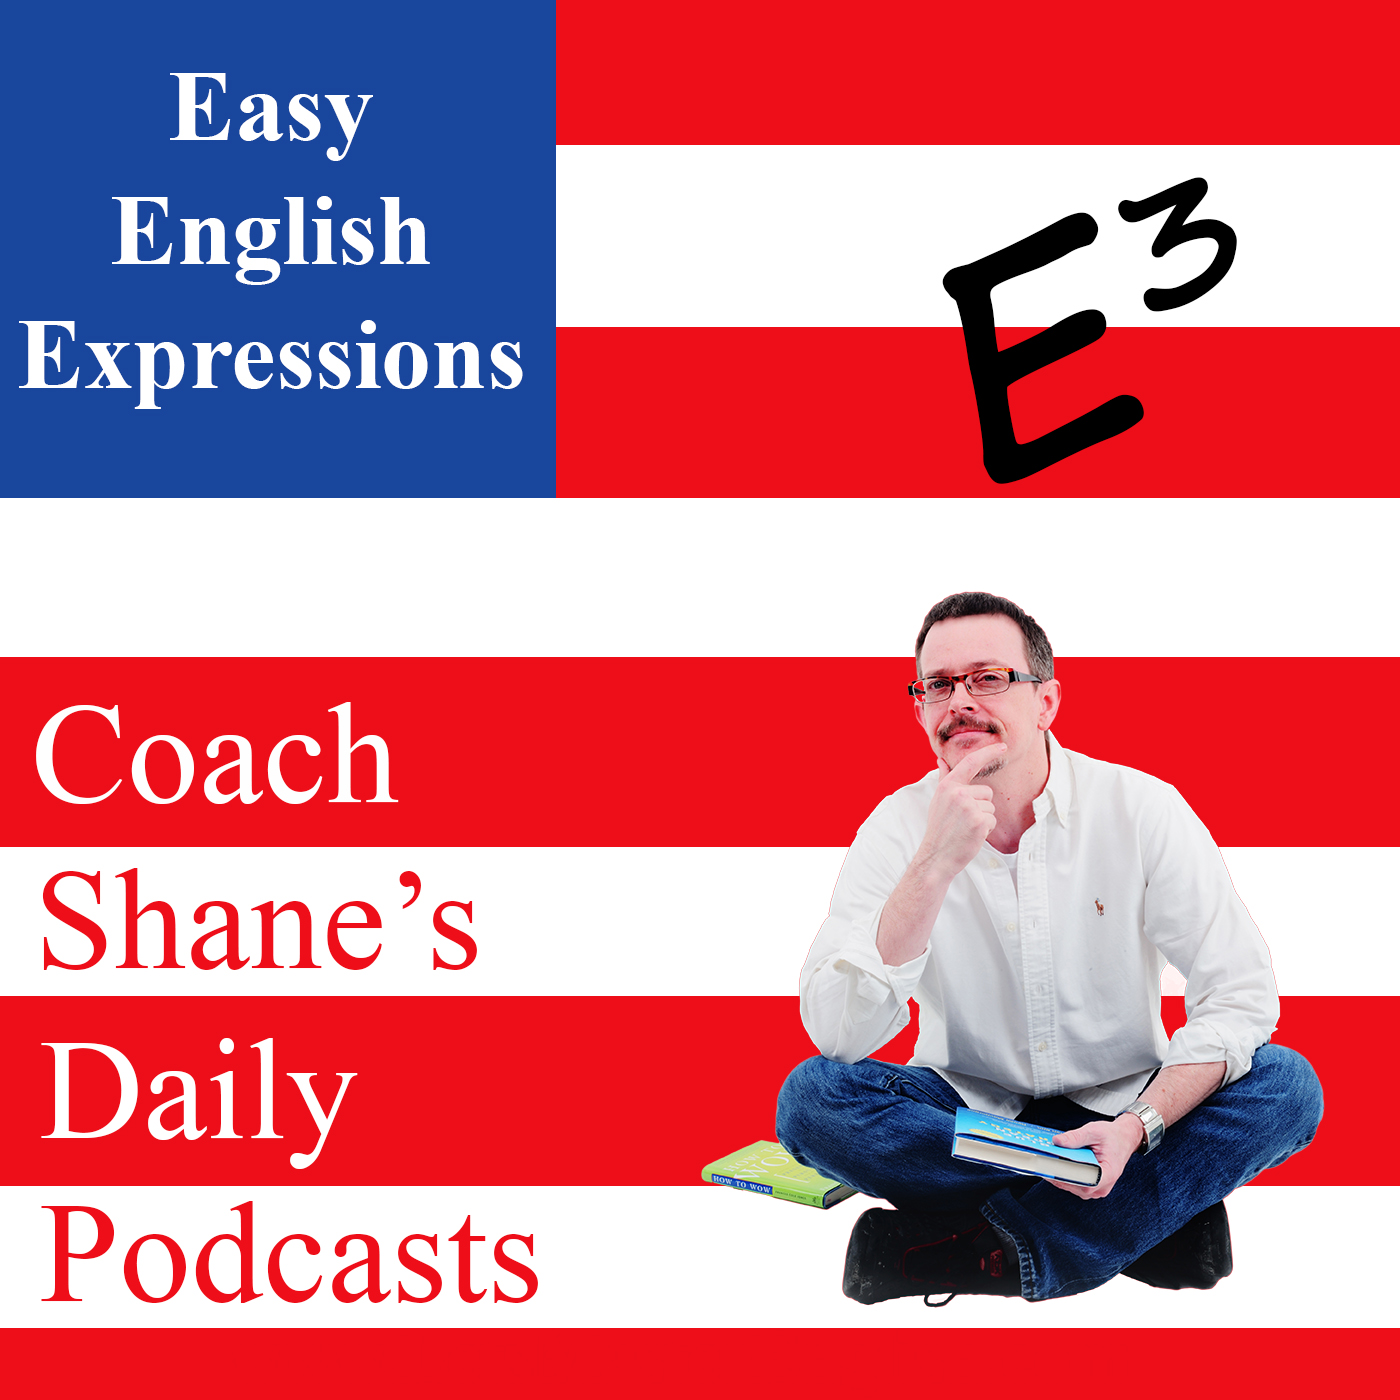 71 Daily Easy English Expression PODCAST—to TINKER AROUND with something